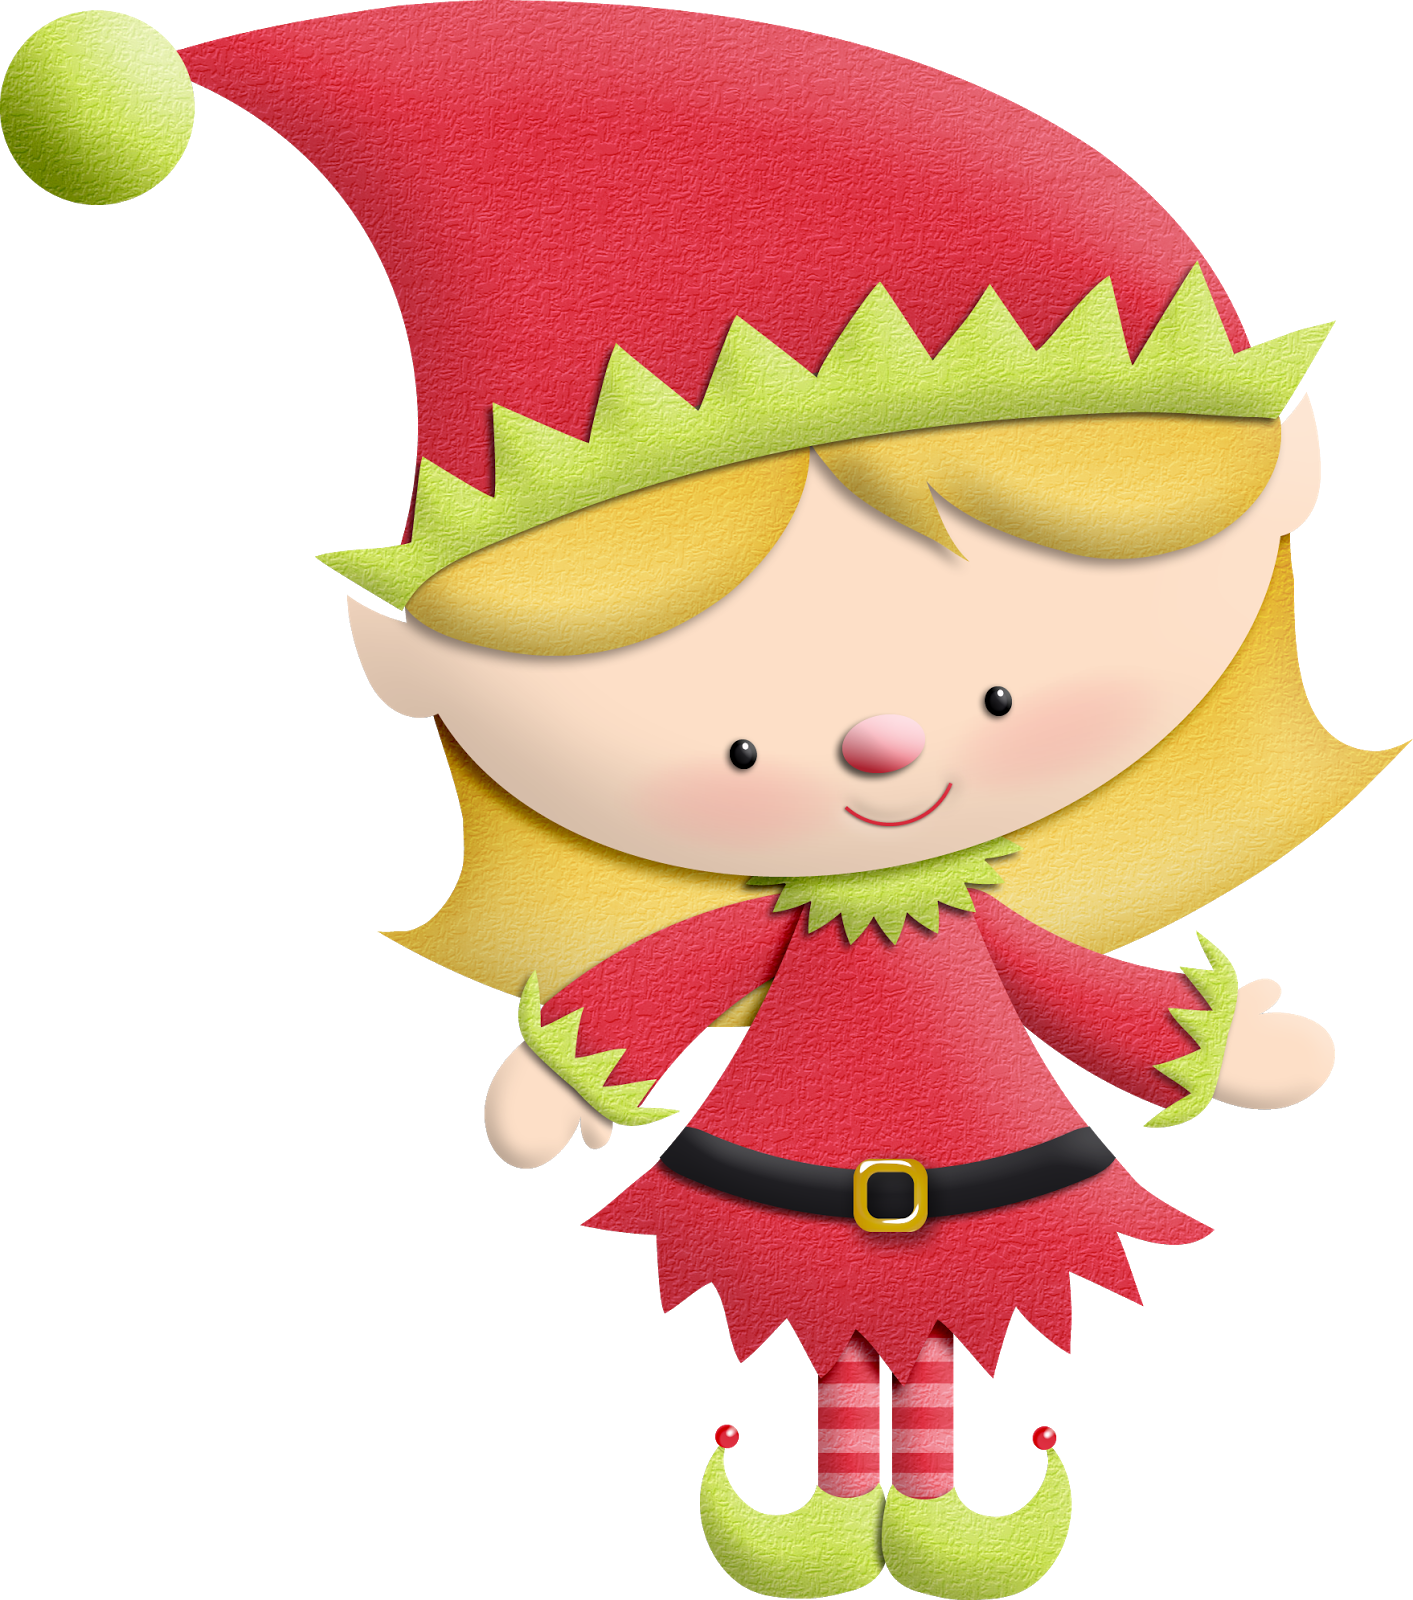 Png Format Images Of Elves Photo image #45828